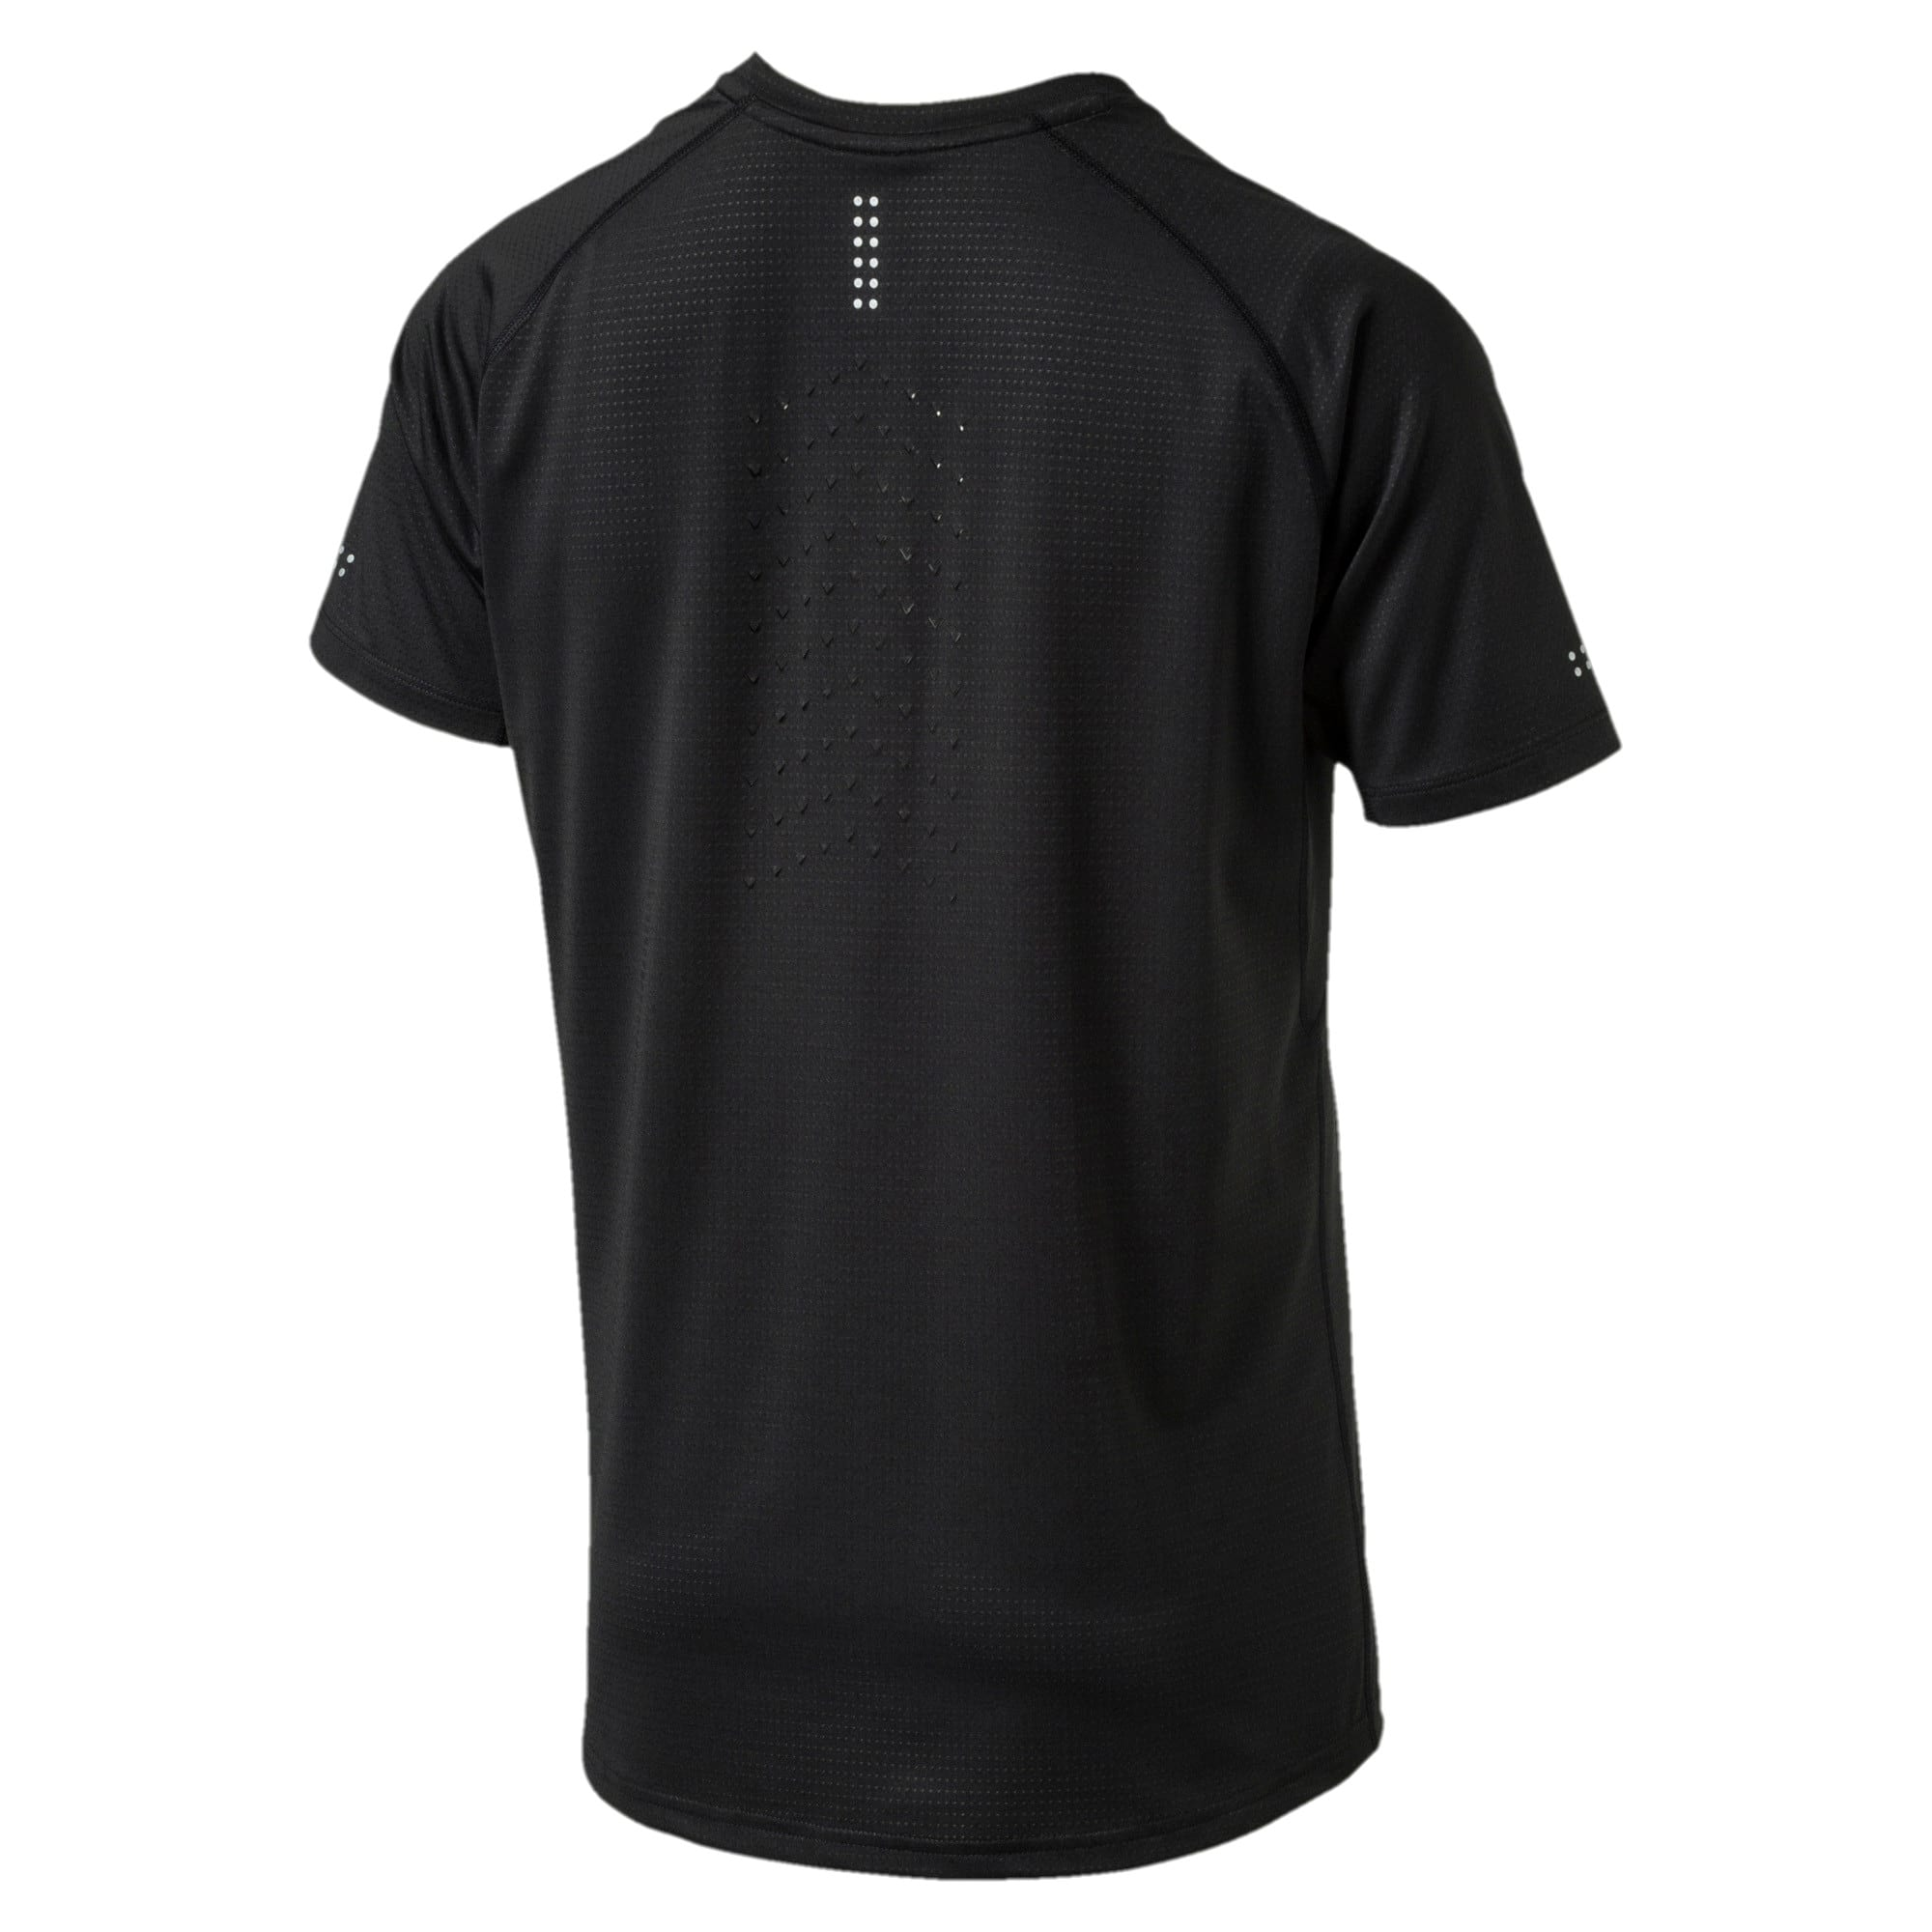 Thumbnail 5 of Running Men's Speed T-Shirt, Puma Black Heather, medium-IND